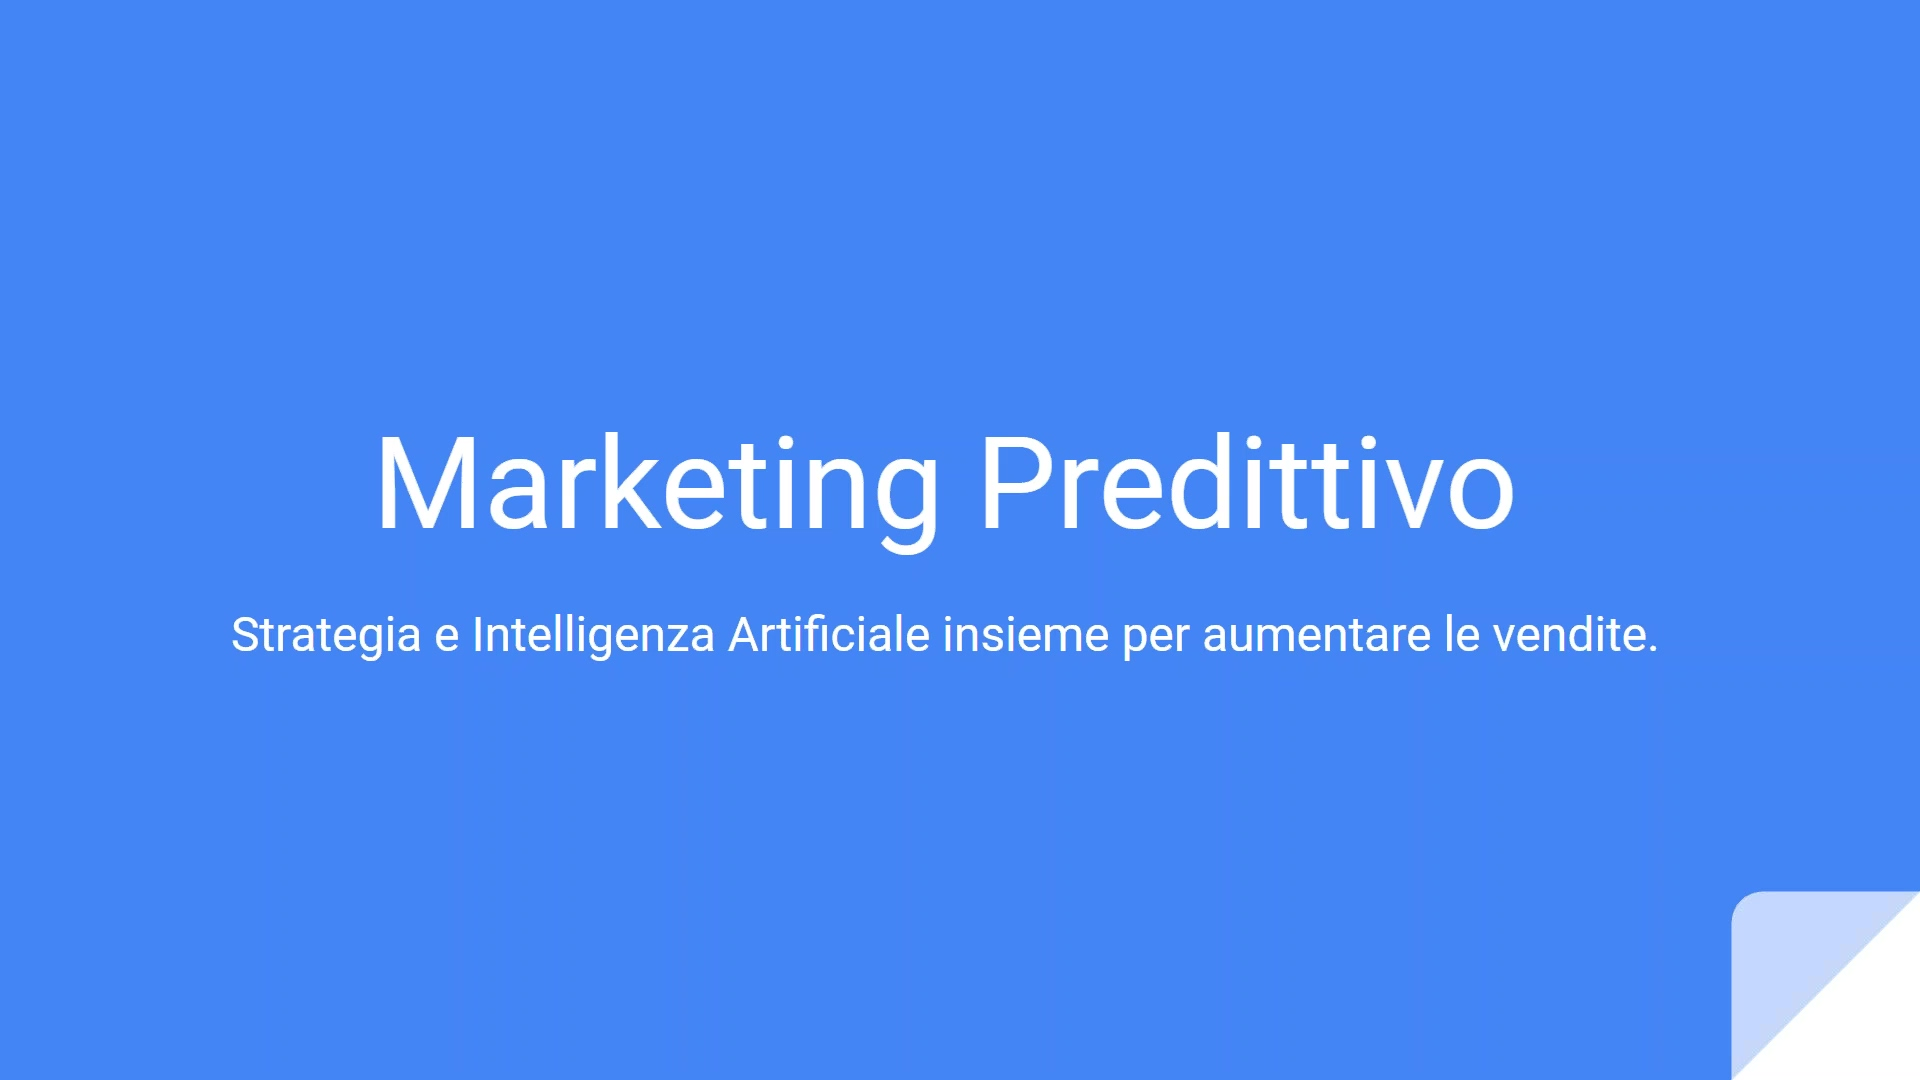 Marketing Predittivo_ Strategia e Intelligenza Artificiale insieme per aumentare le vendite.